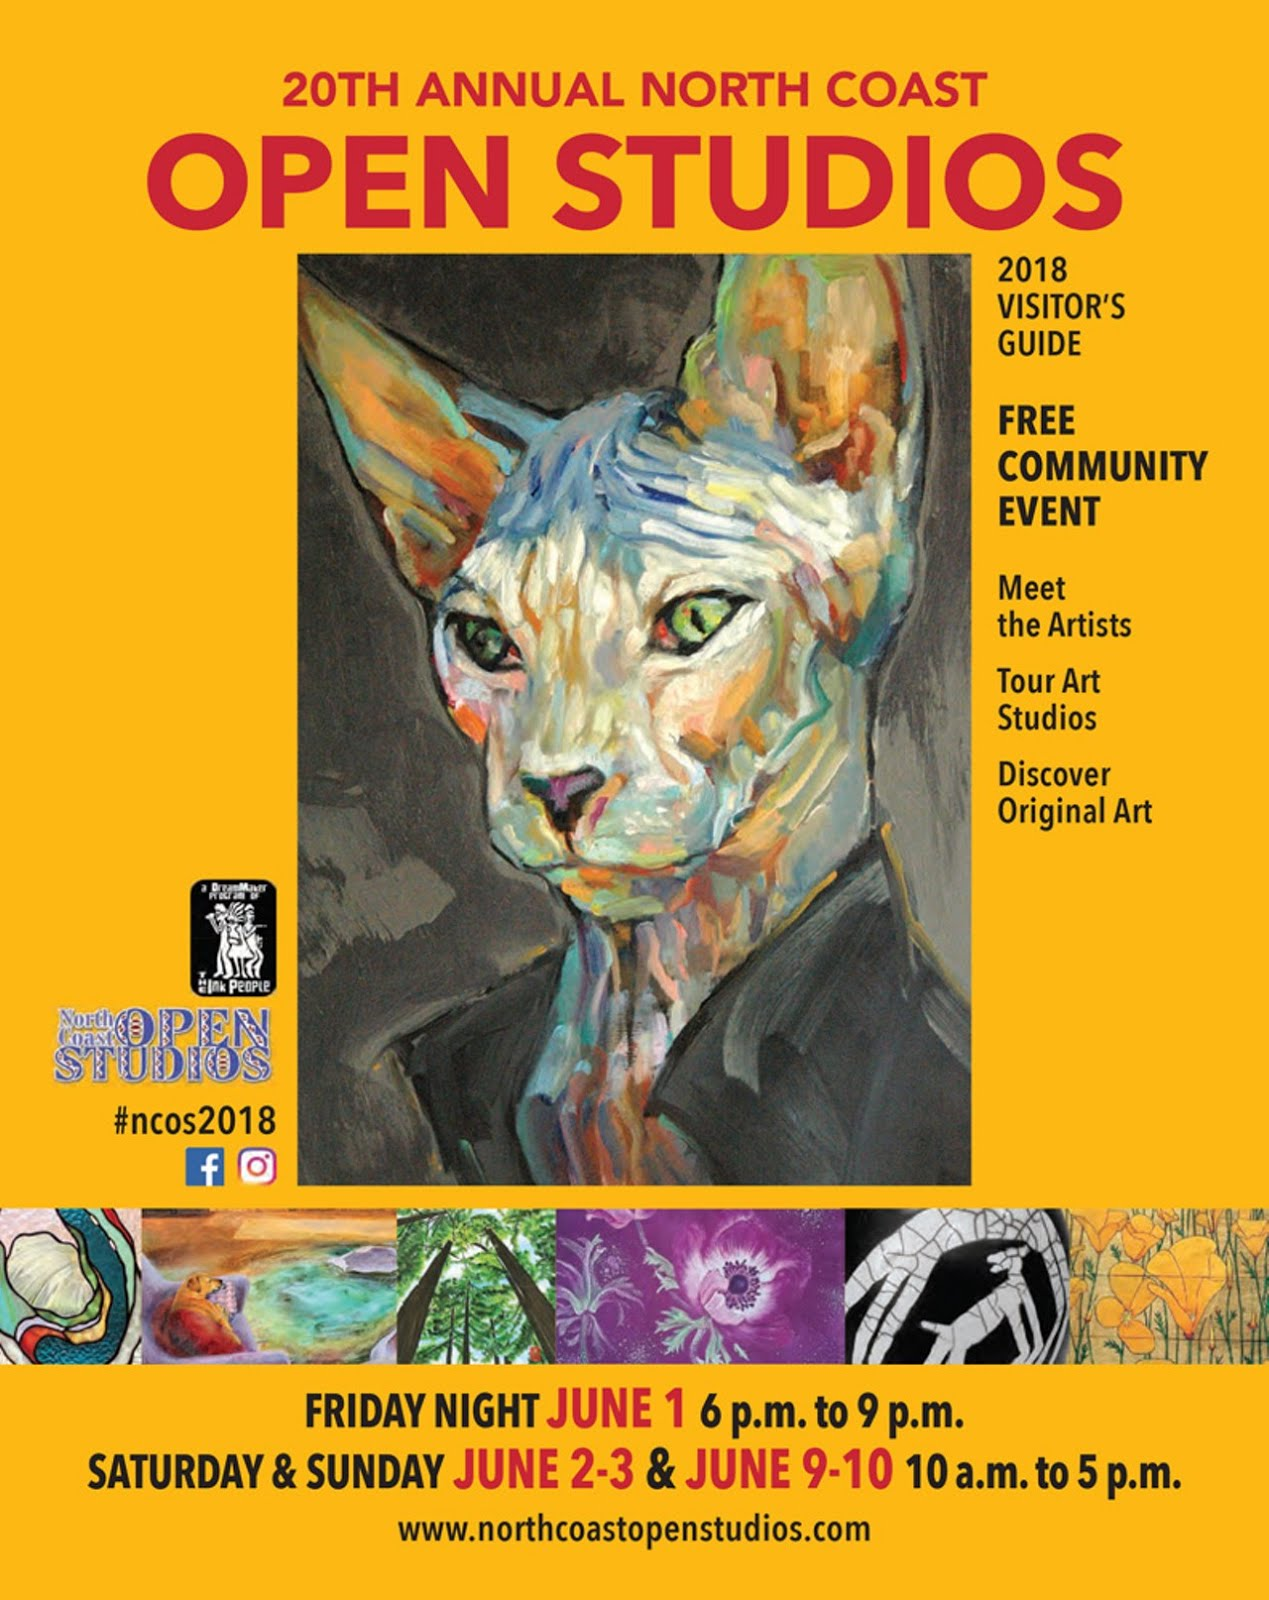 North Coast Open Studios! June 2nd